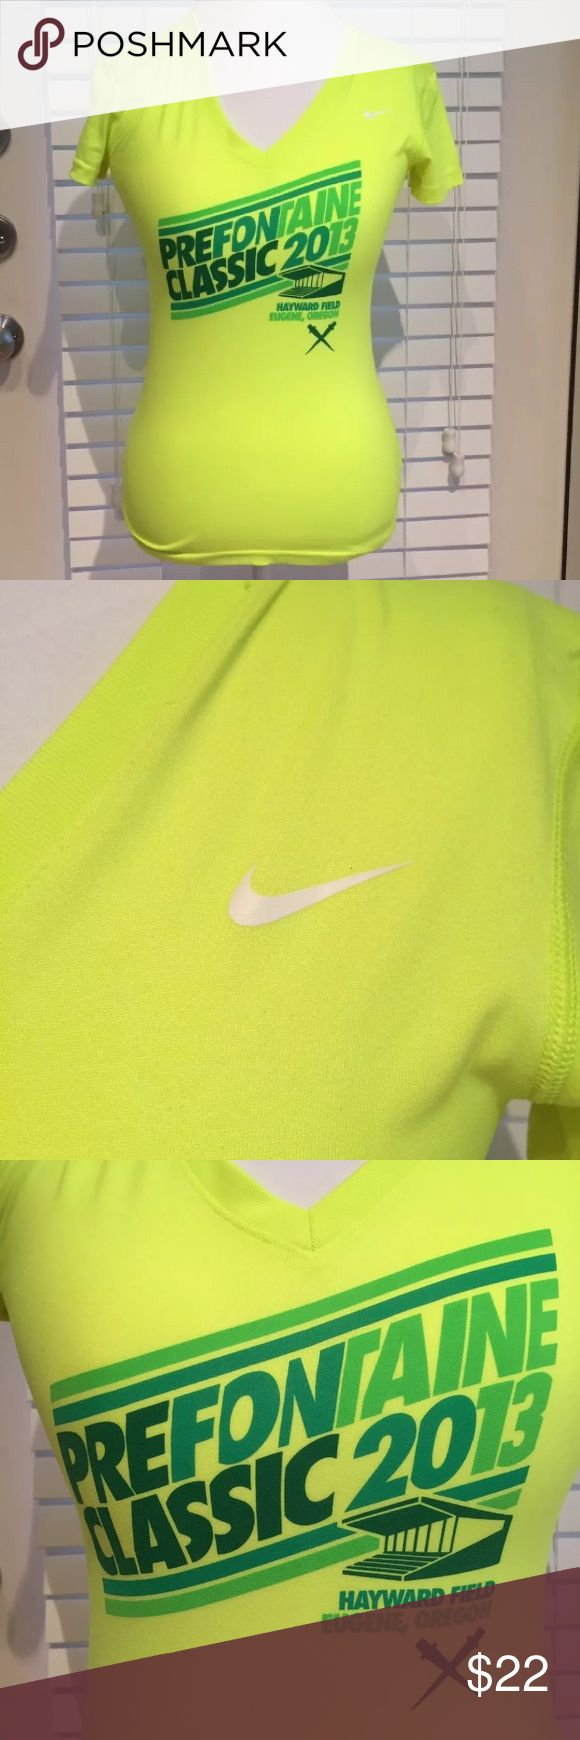 Women's Nike Prefontaine Classic 2013 Top Size XS Great Quality, Very Soft!! Nike Tops Tees - Short Sleeve